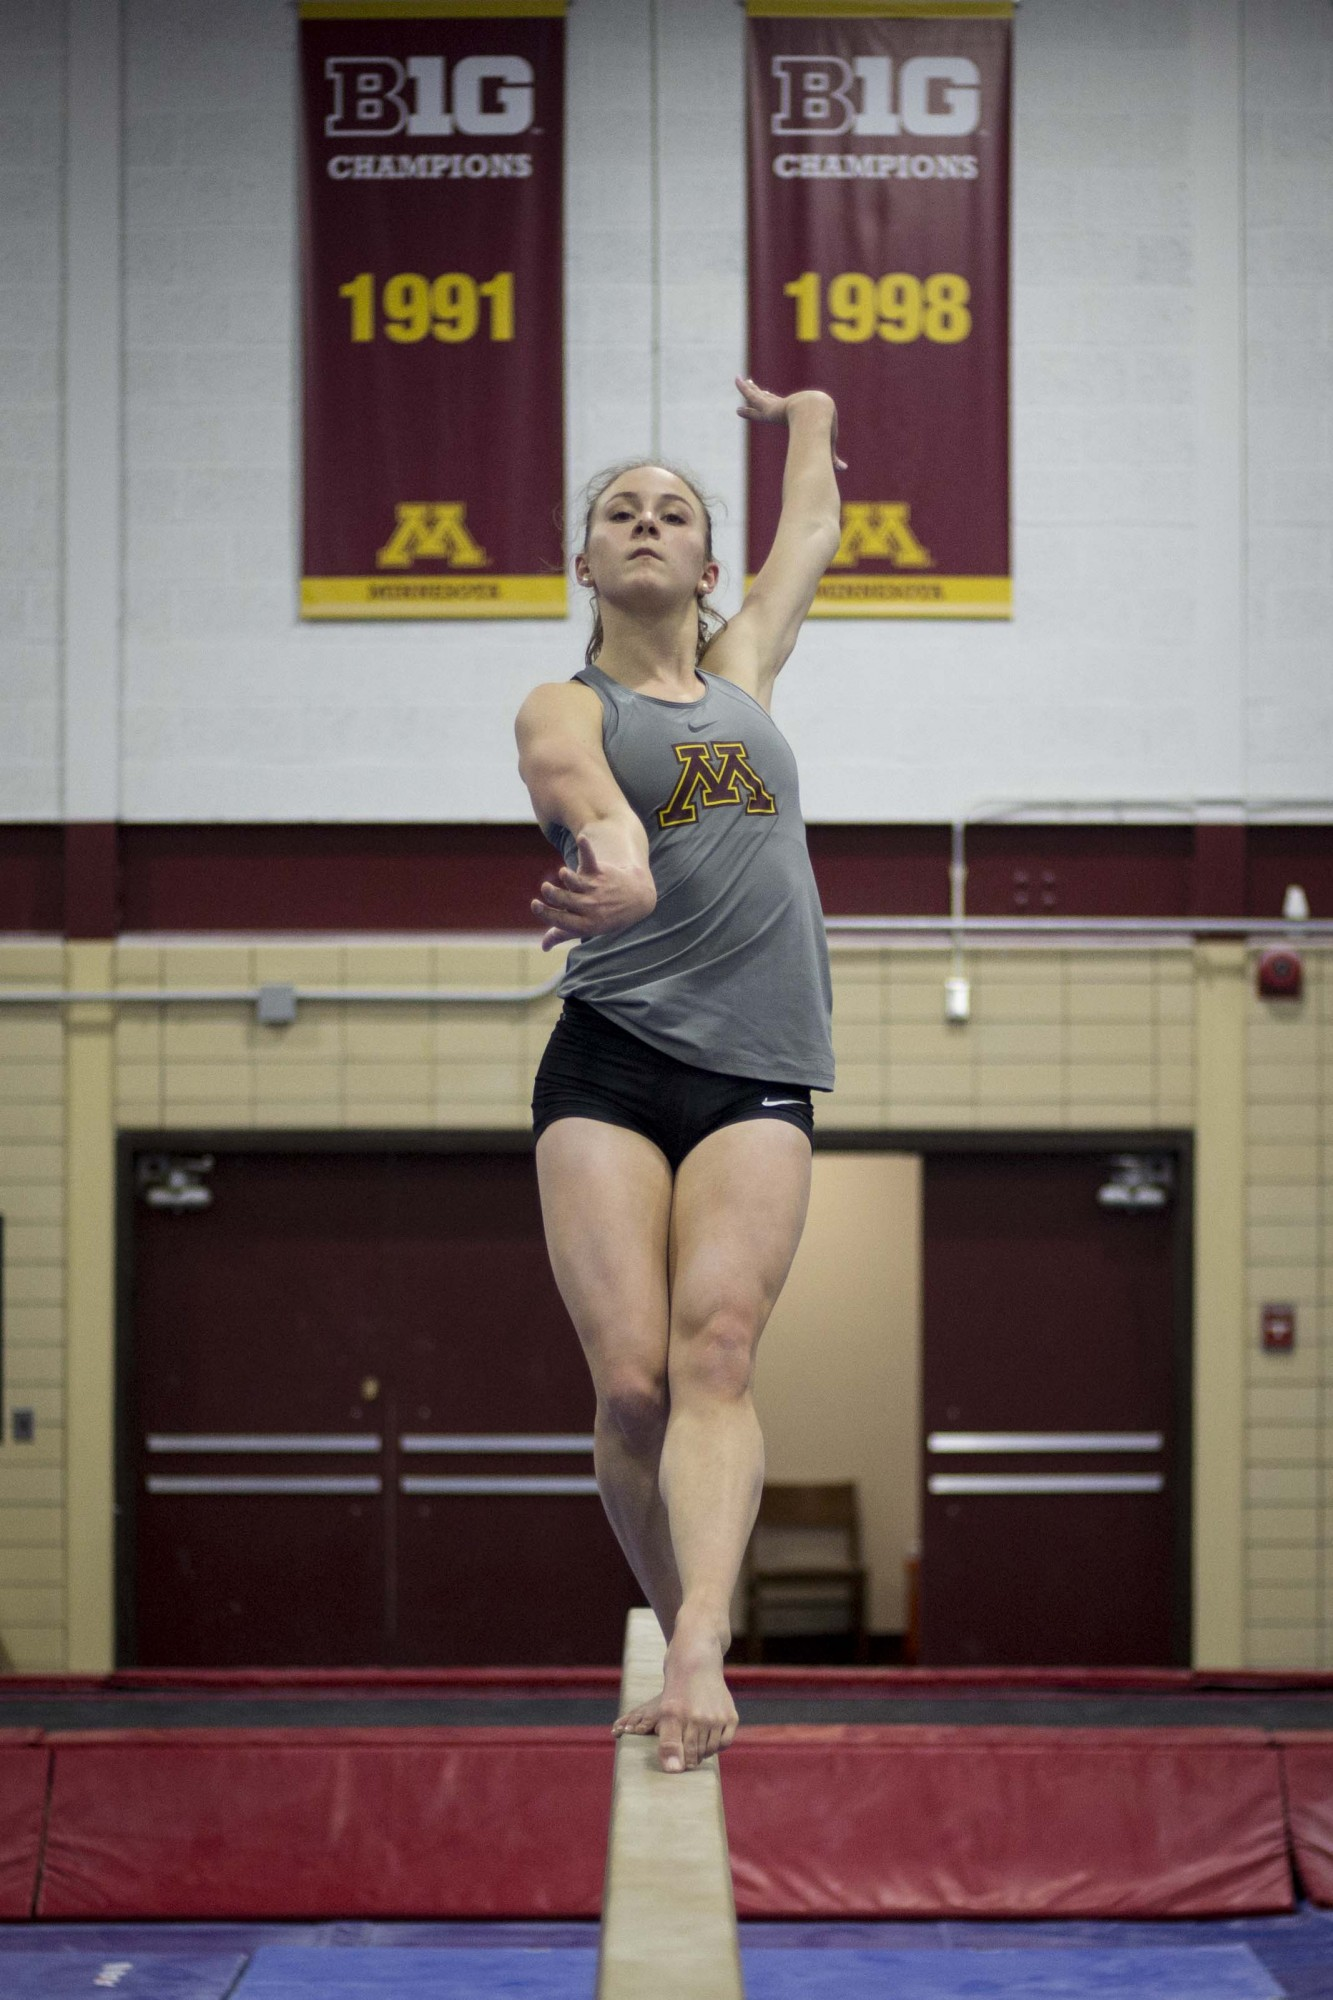 Gymnast Lexi Ramler poses on the beam in the Peik Gym on Thursday, Jan. 30. Ramler scored a perfect 10 in two consecutive weeks during meets against Rutgers and Illinois.